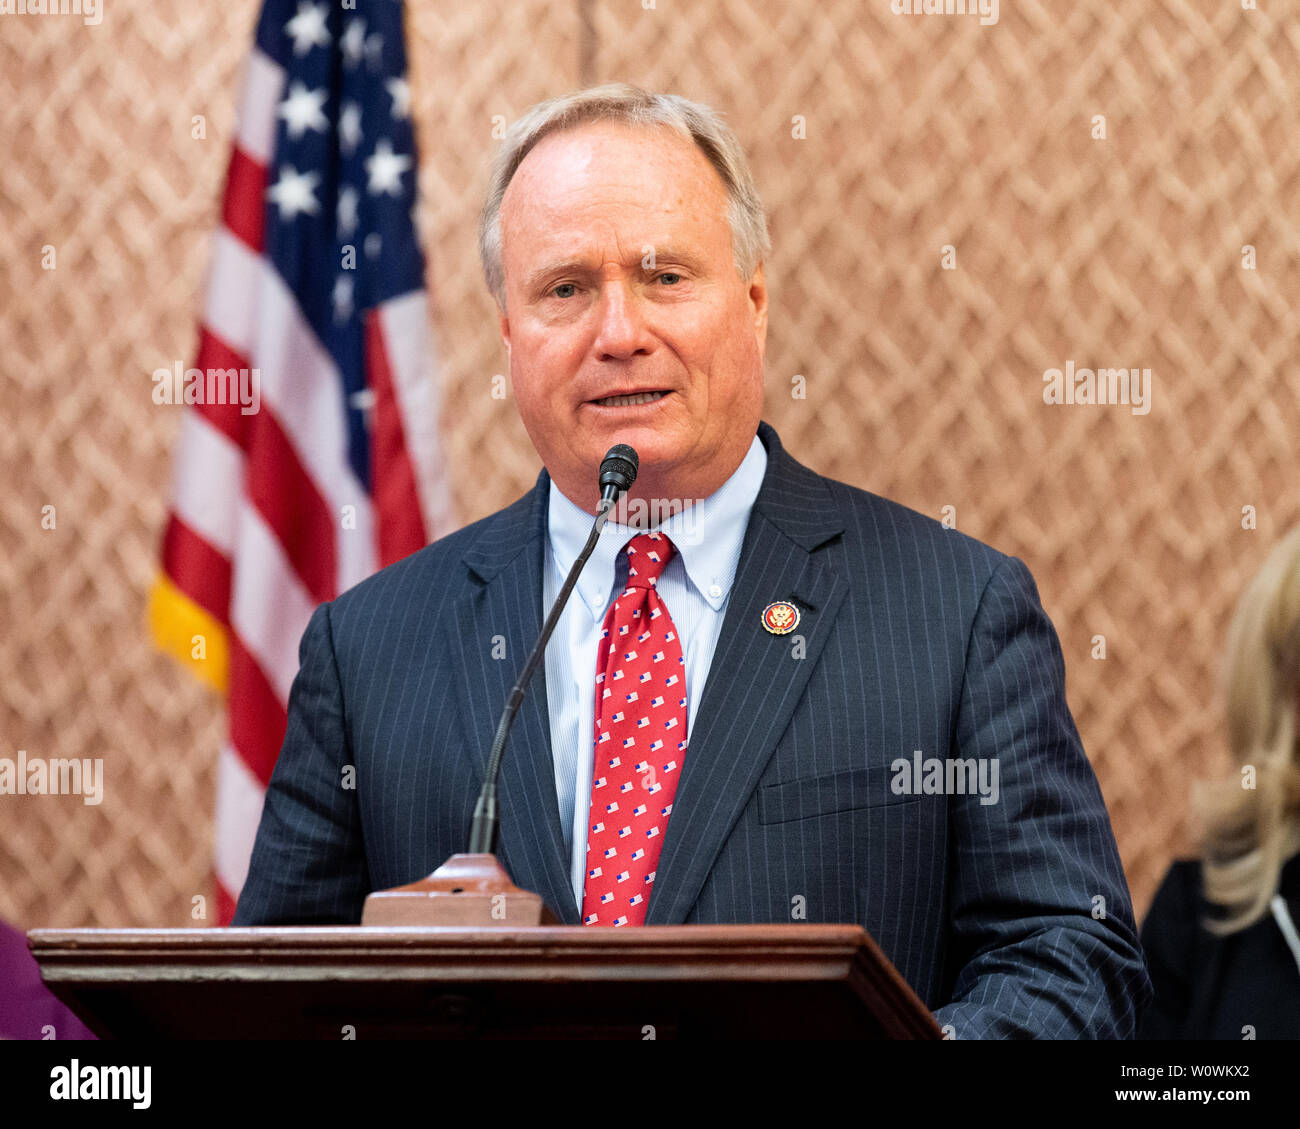 Washington, United States. 27th June, 2019. U.S. Representative David Joyce (R-OH) speaking at a press conference sponsored by the Problem Solvers Caucus and the Common Sense Coalition to announce 'principles for legislation to lower prescription drug prices' at the US Capitol in Washington, DC. Credit: SOPA Images Limited/Alamy Live News - Stock Image